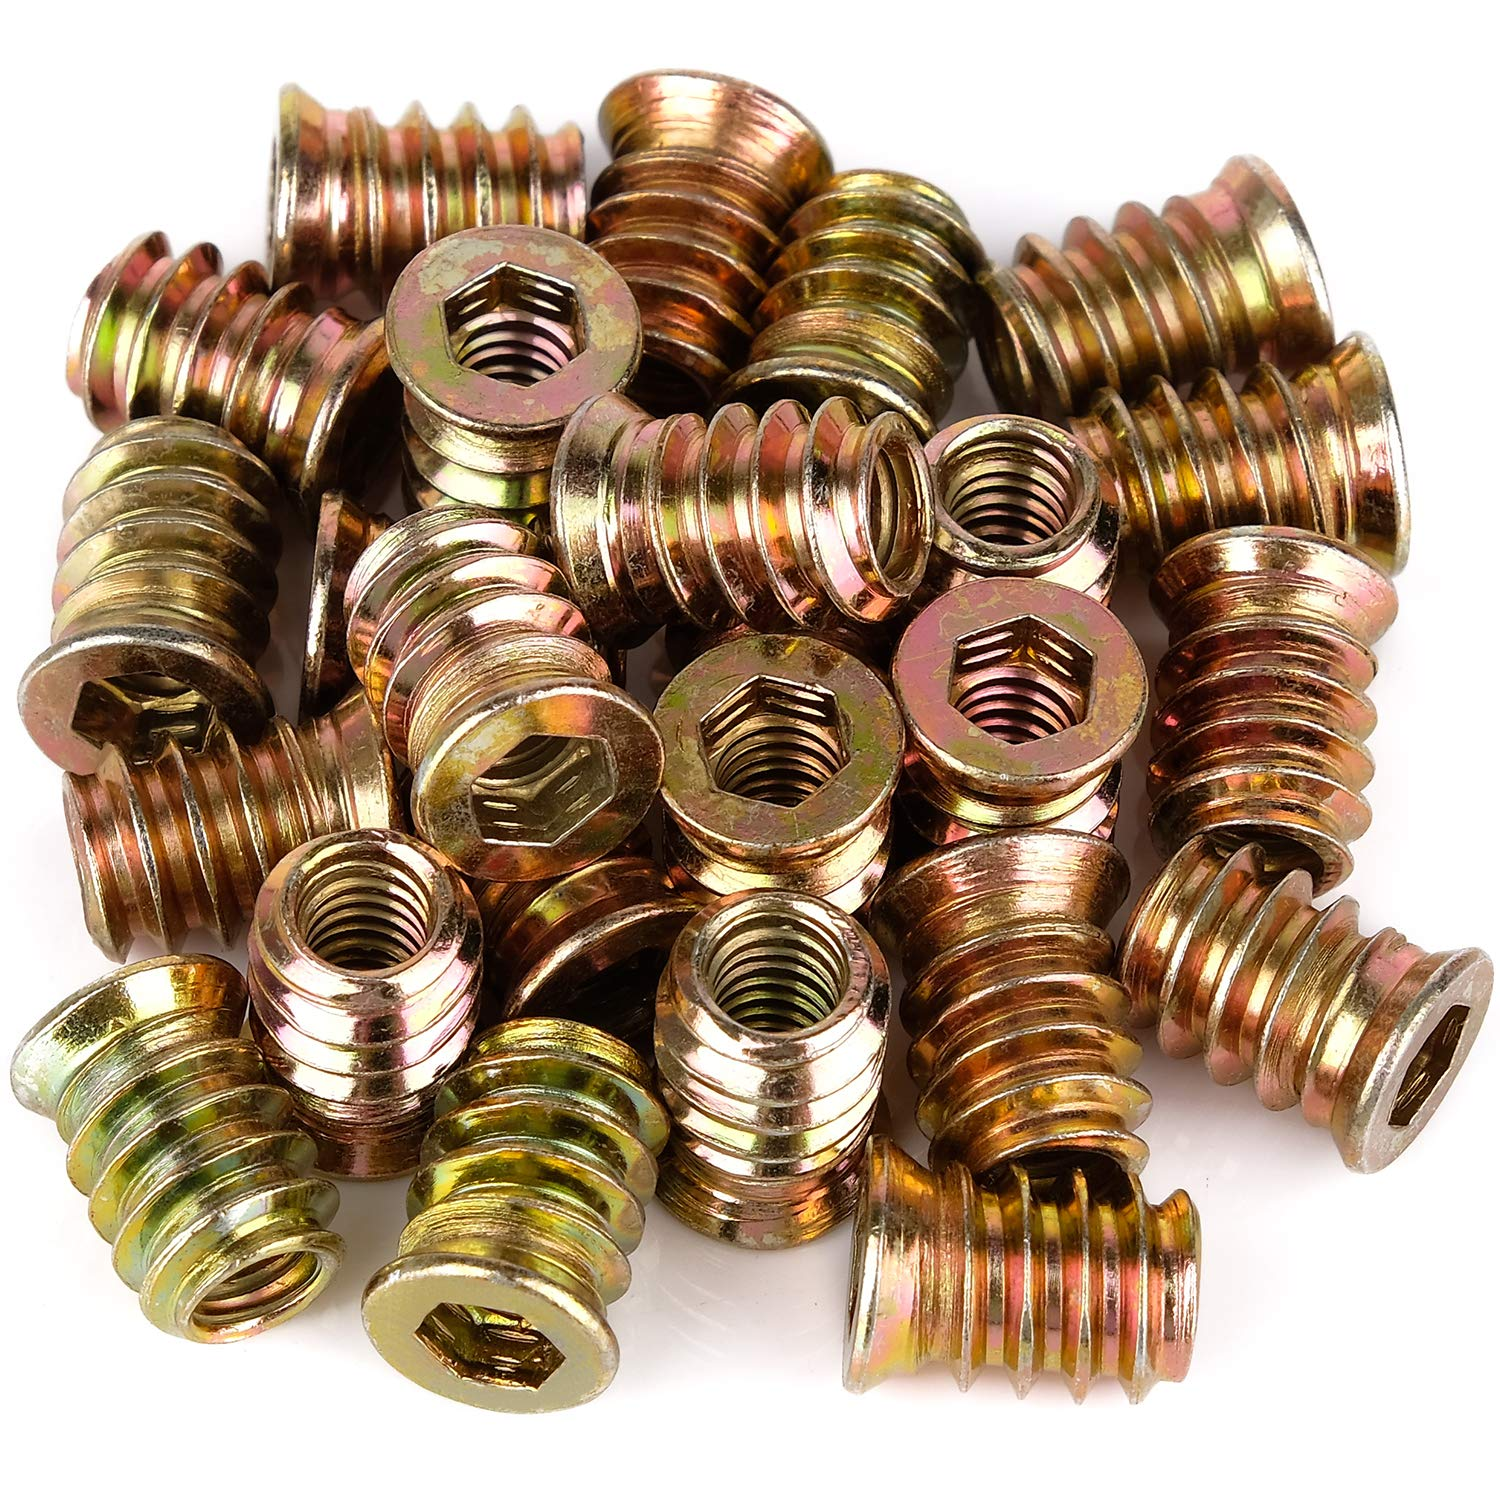 40Pcs Anwenk 1/4''-20 x 15mm Furniture Screw in Nut Threaded Wood Inserts Bolt Fastener Connector Hex Socket Drive for Wood Furniture Assortment